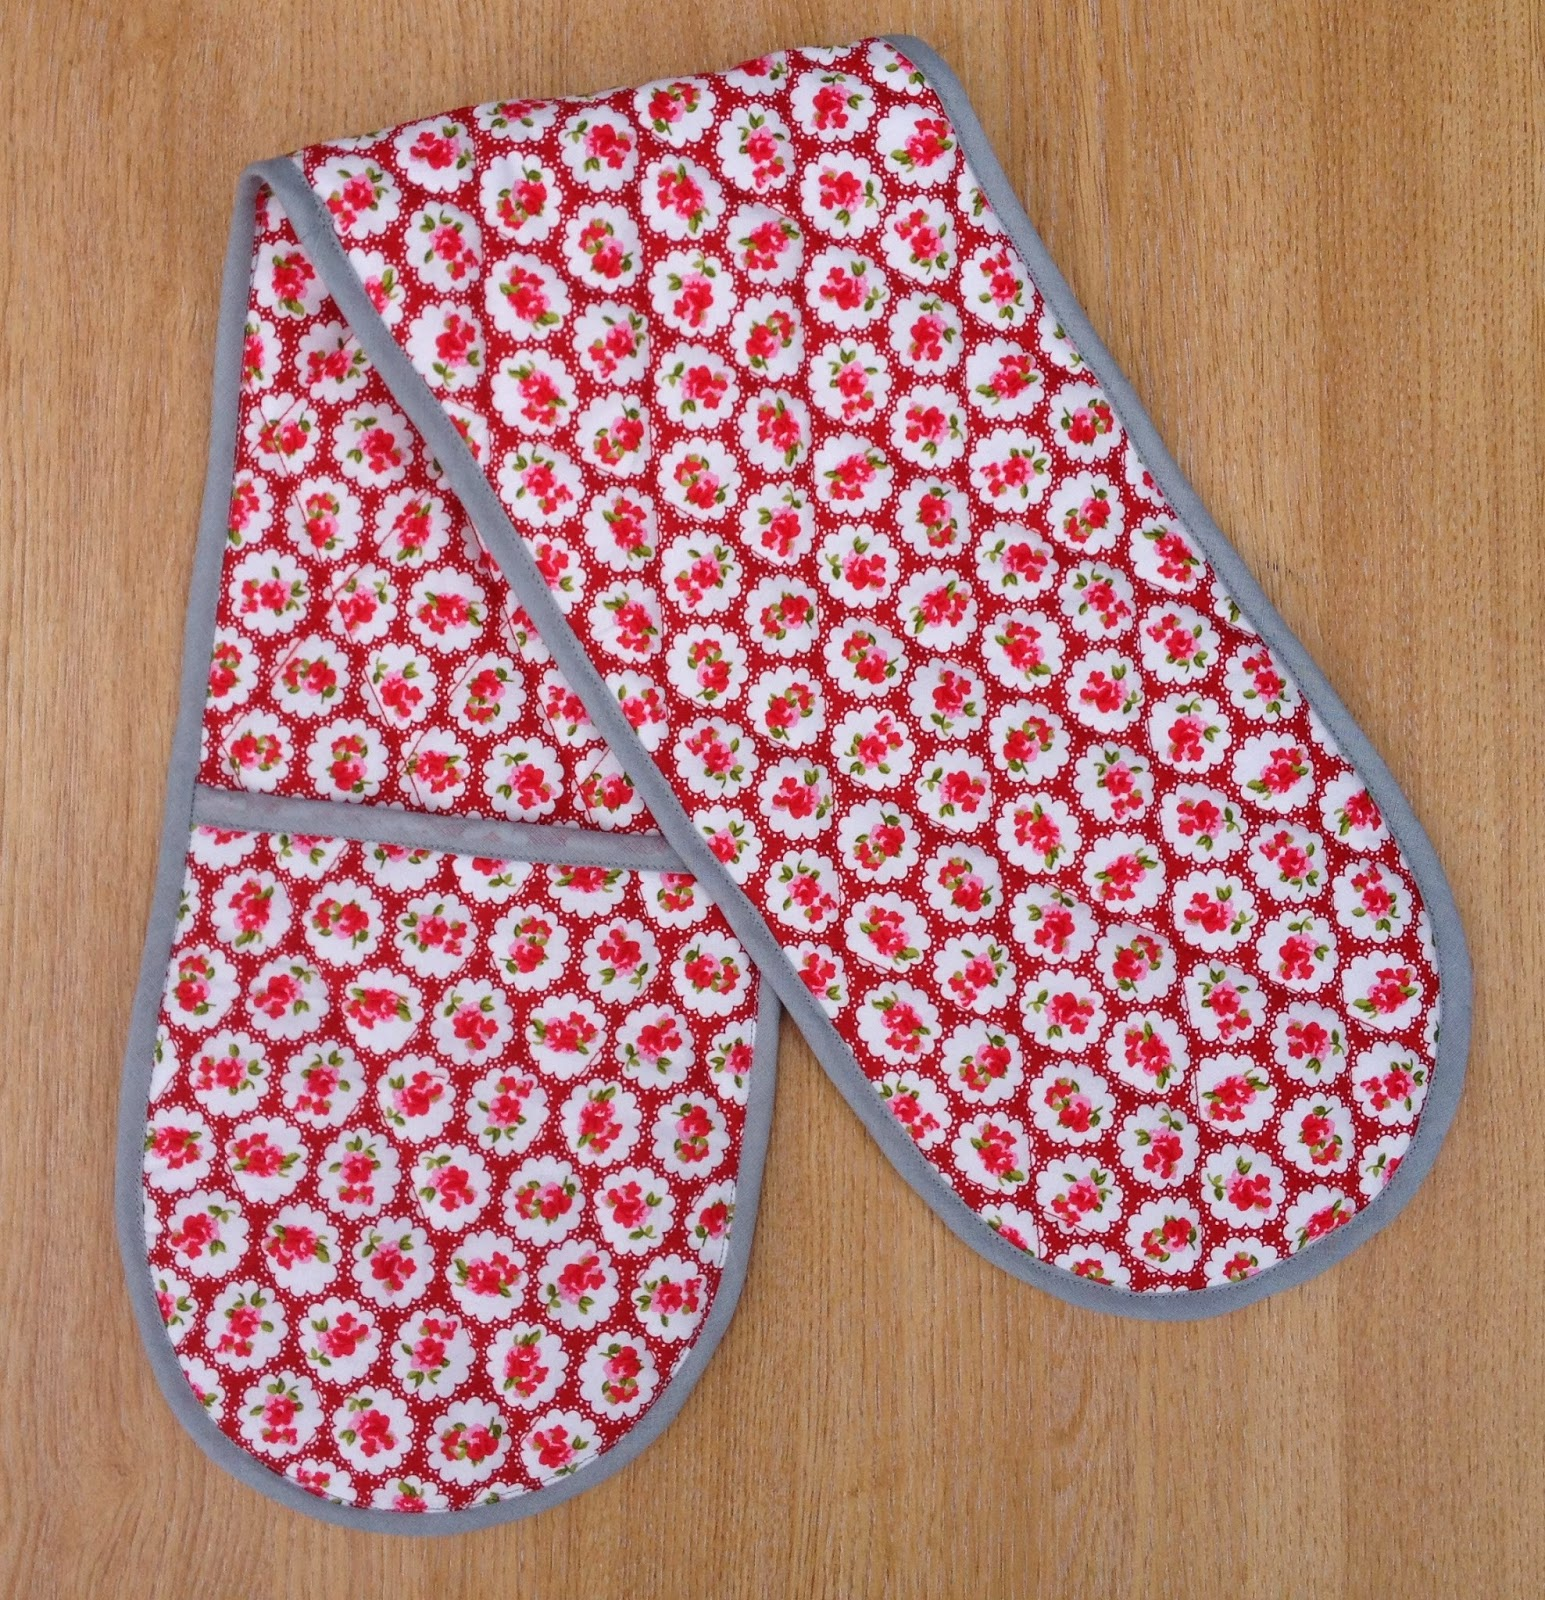 Bundles And Buttons Oven Glove Tutorial And Free Pattern